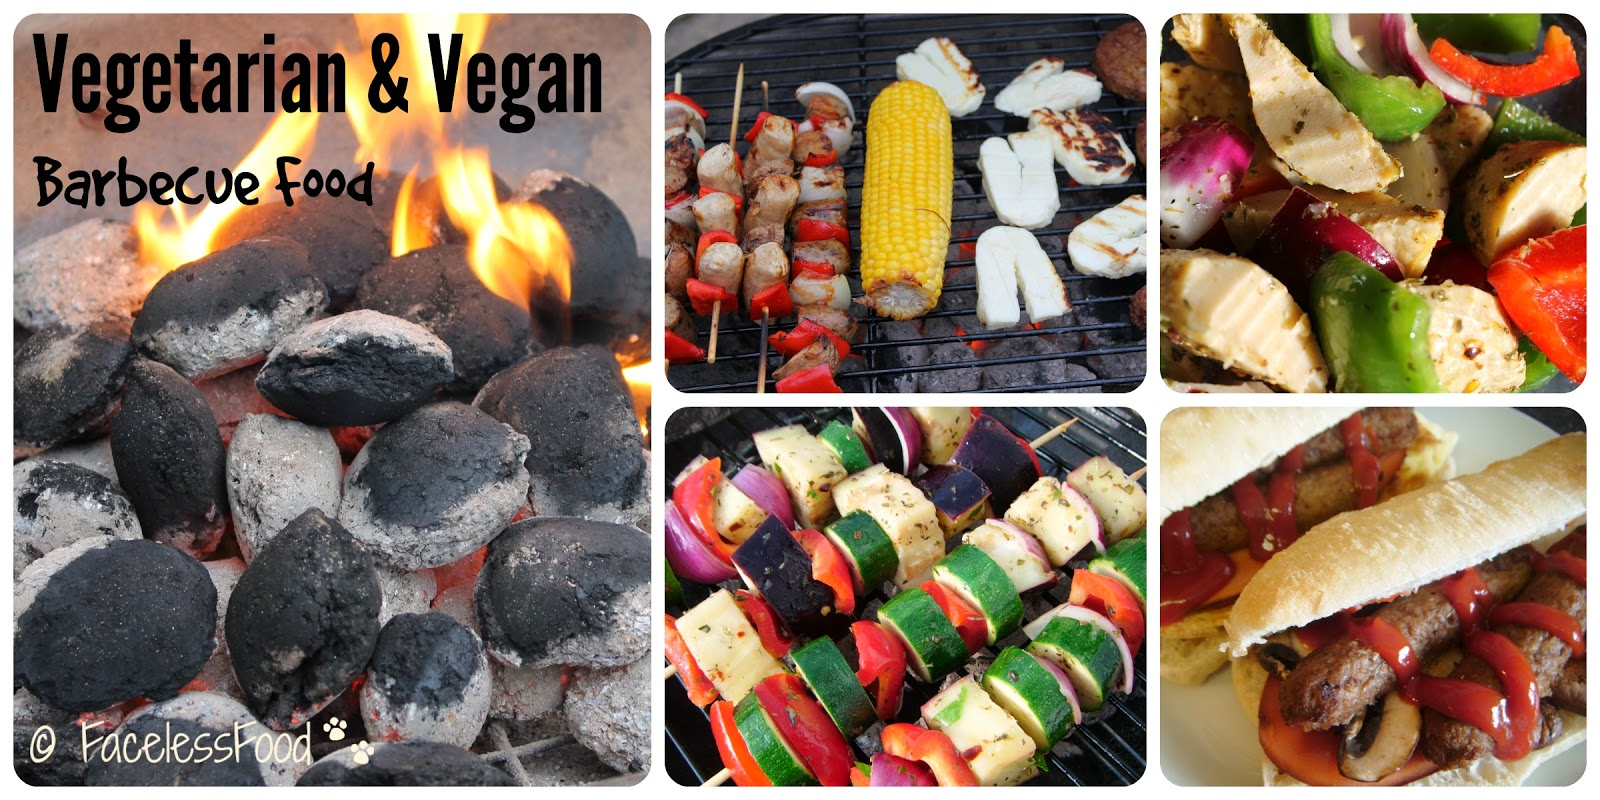 Vegetarian and vegan food cooking on a barbecue